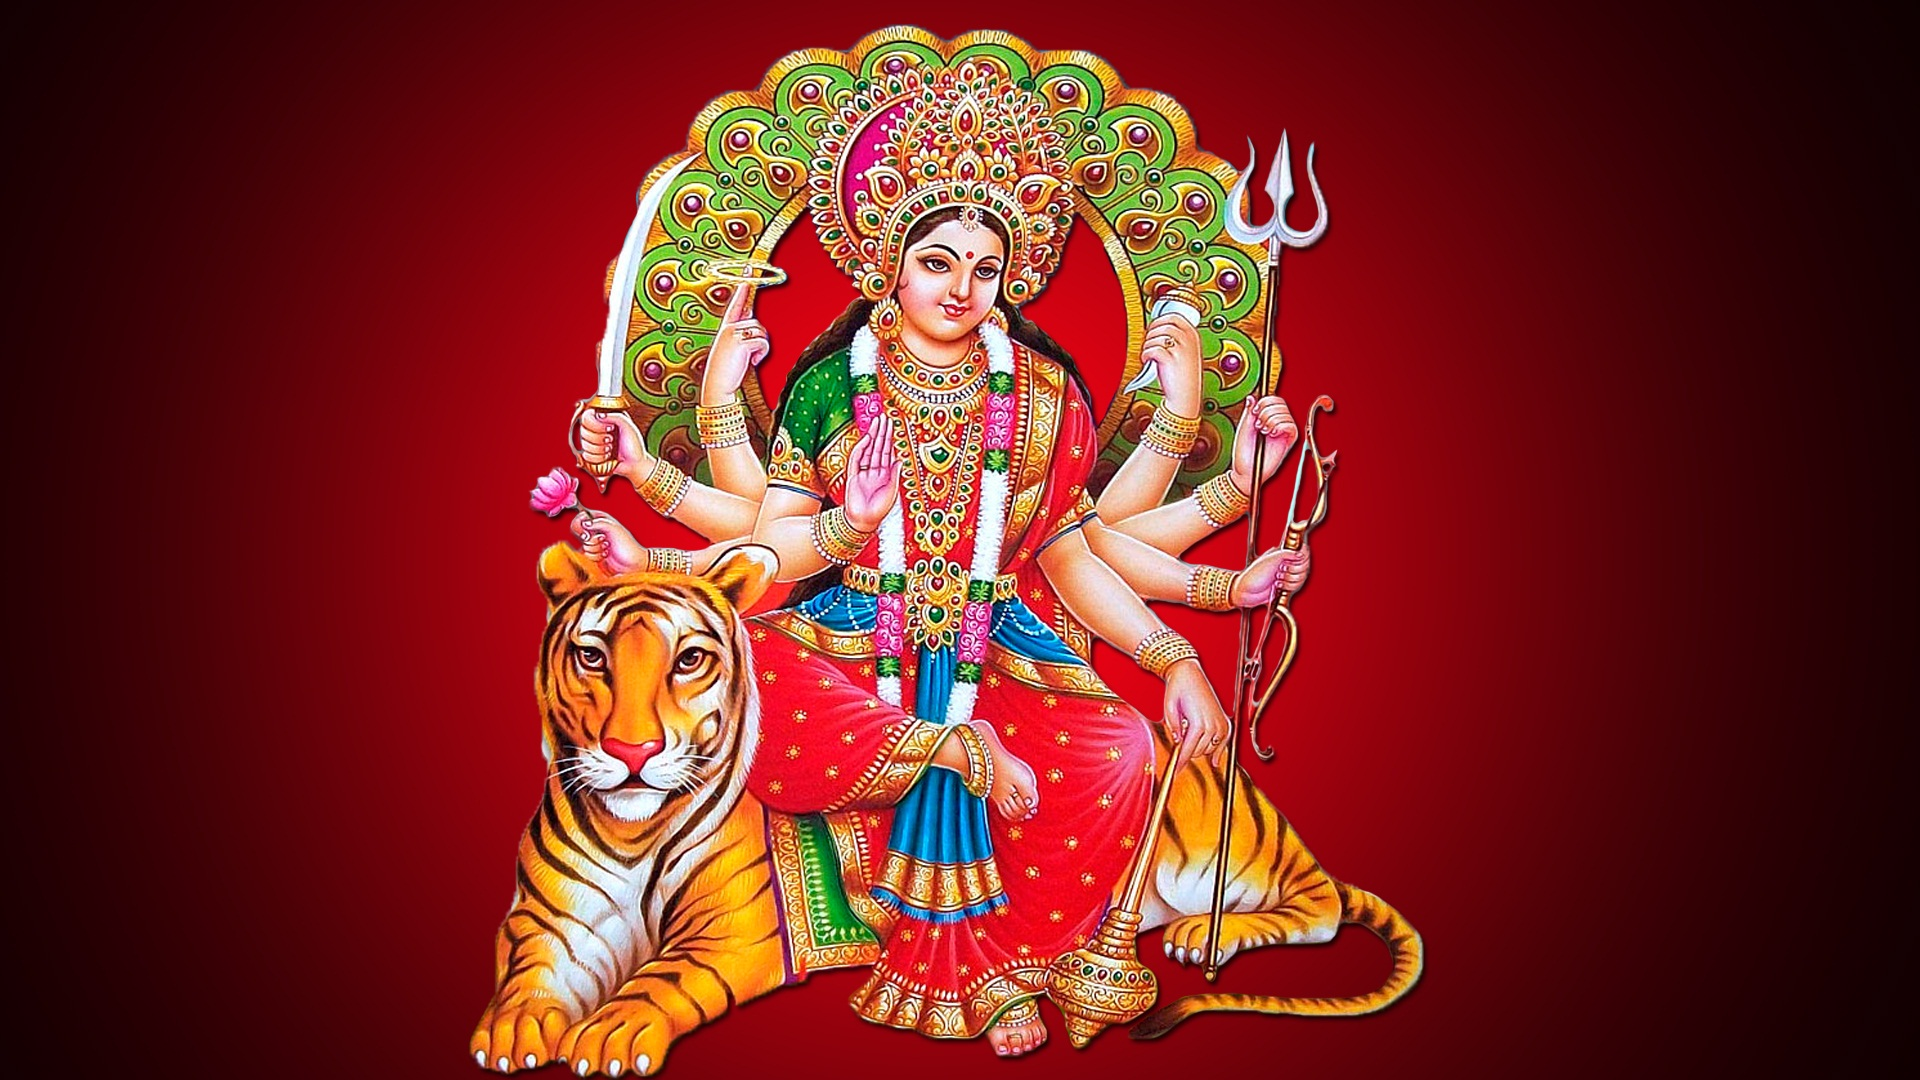 maa durga images maa durga wallpapers maa durga photos maa durga